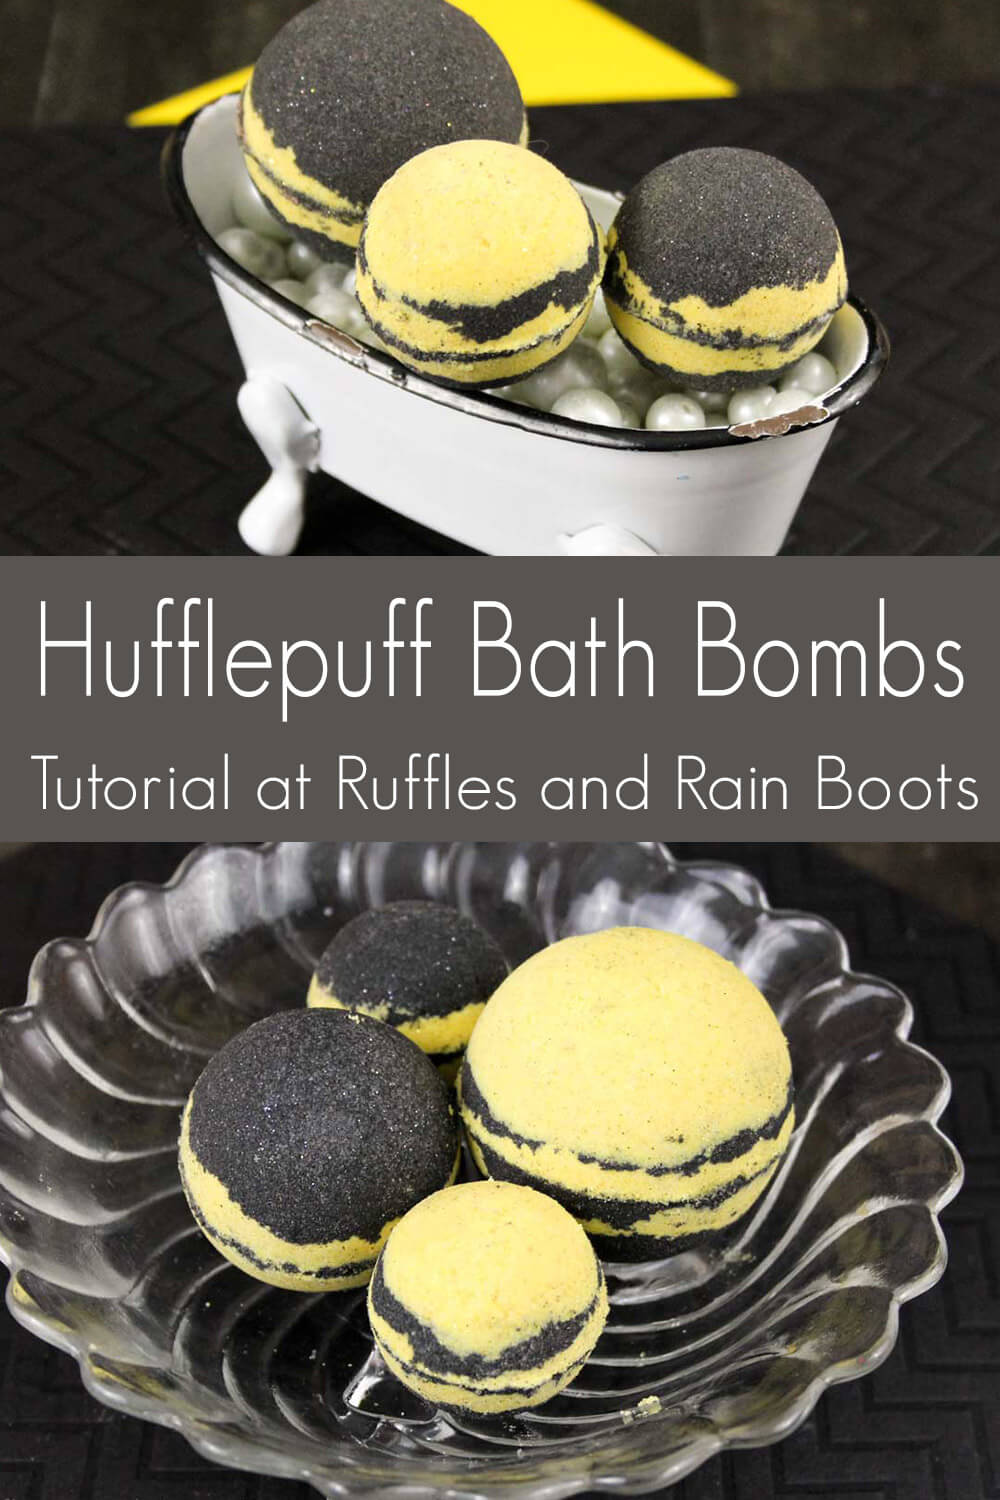 hufflepuff shower bombs gift idea photo collage with text which reads hufflepuff bath bombs